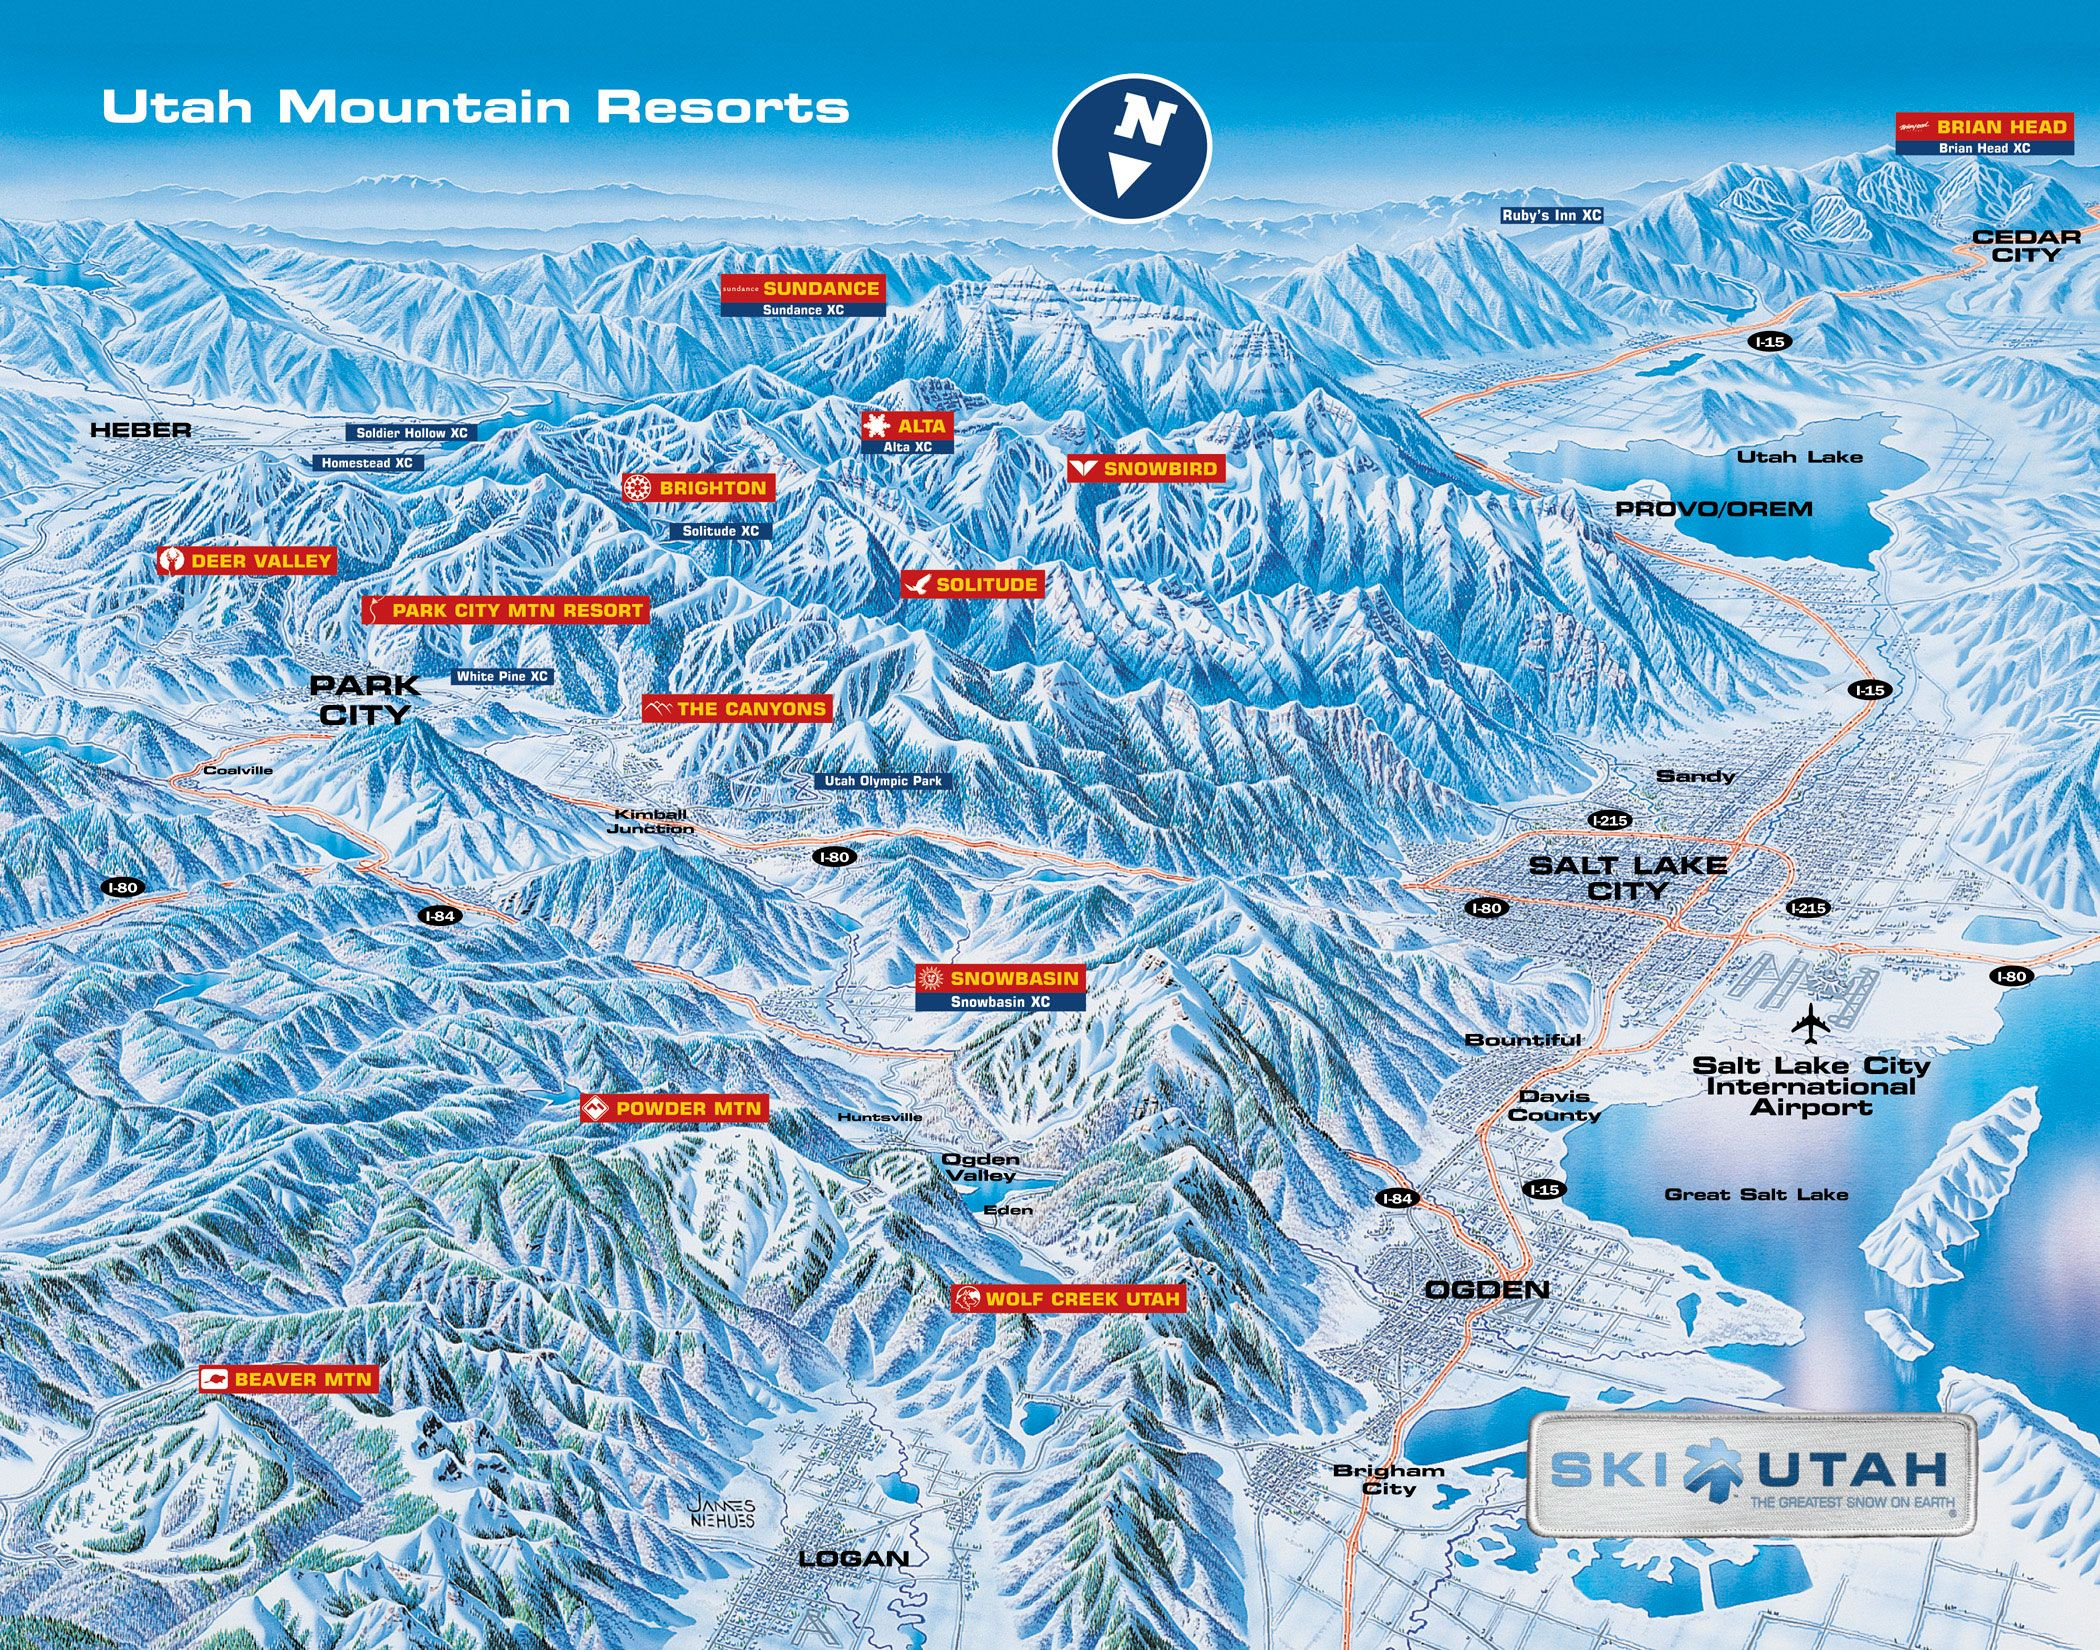 Utah Ski Resorts Map Ski Utah Pinterest Resorts Utah And Ski - Map of colorado ski resorts and cities